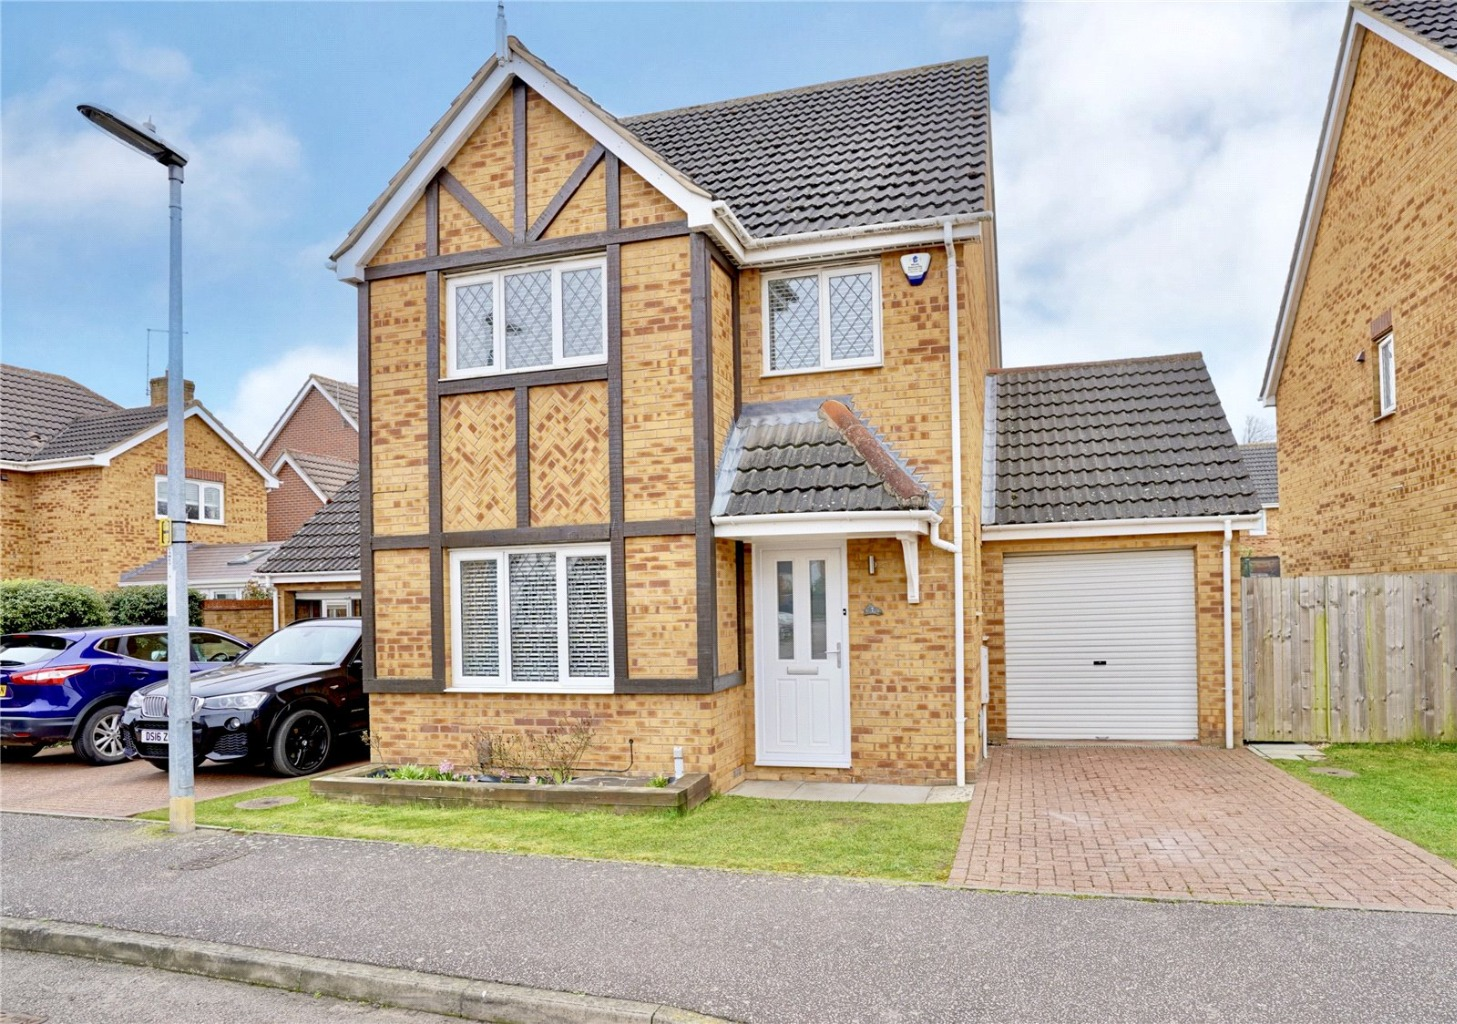 3 bed  for sale in Chamberlain Way, St. Neots, PE19